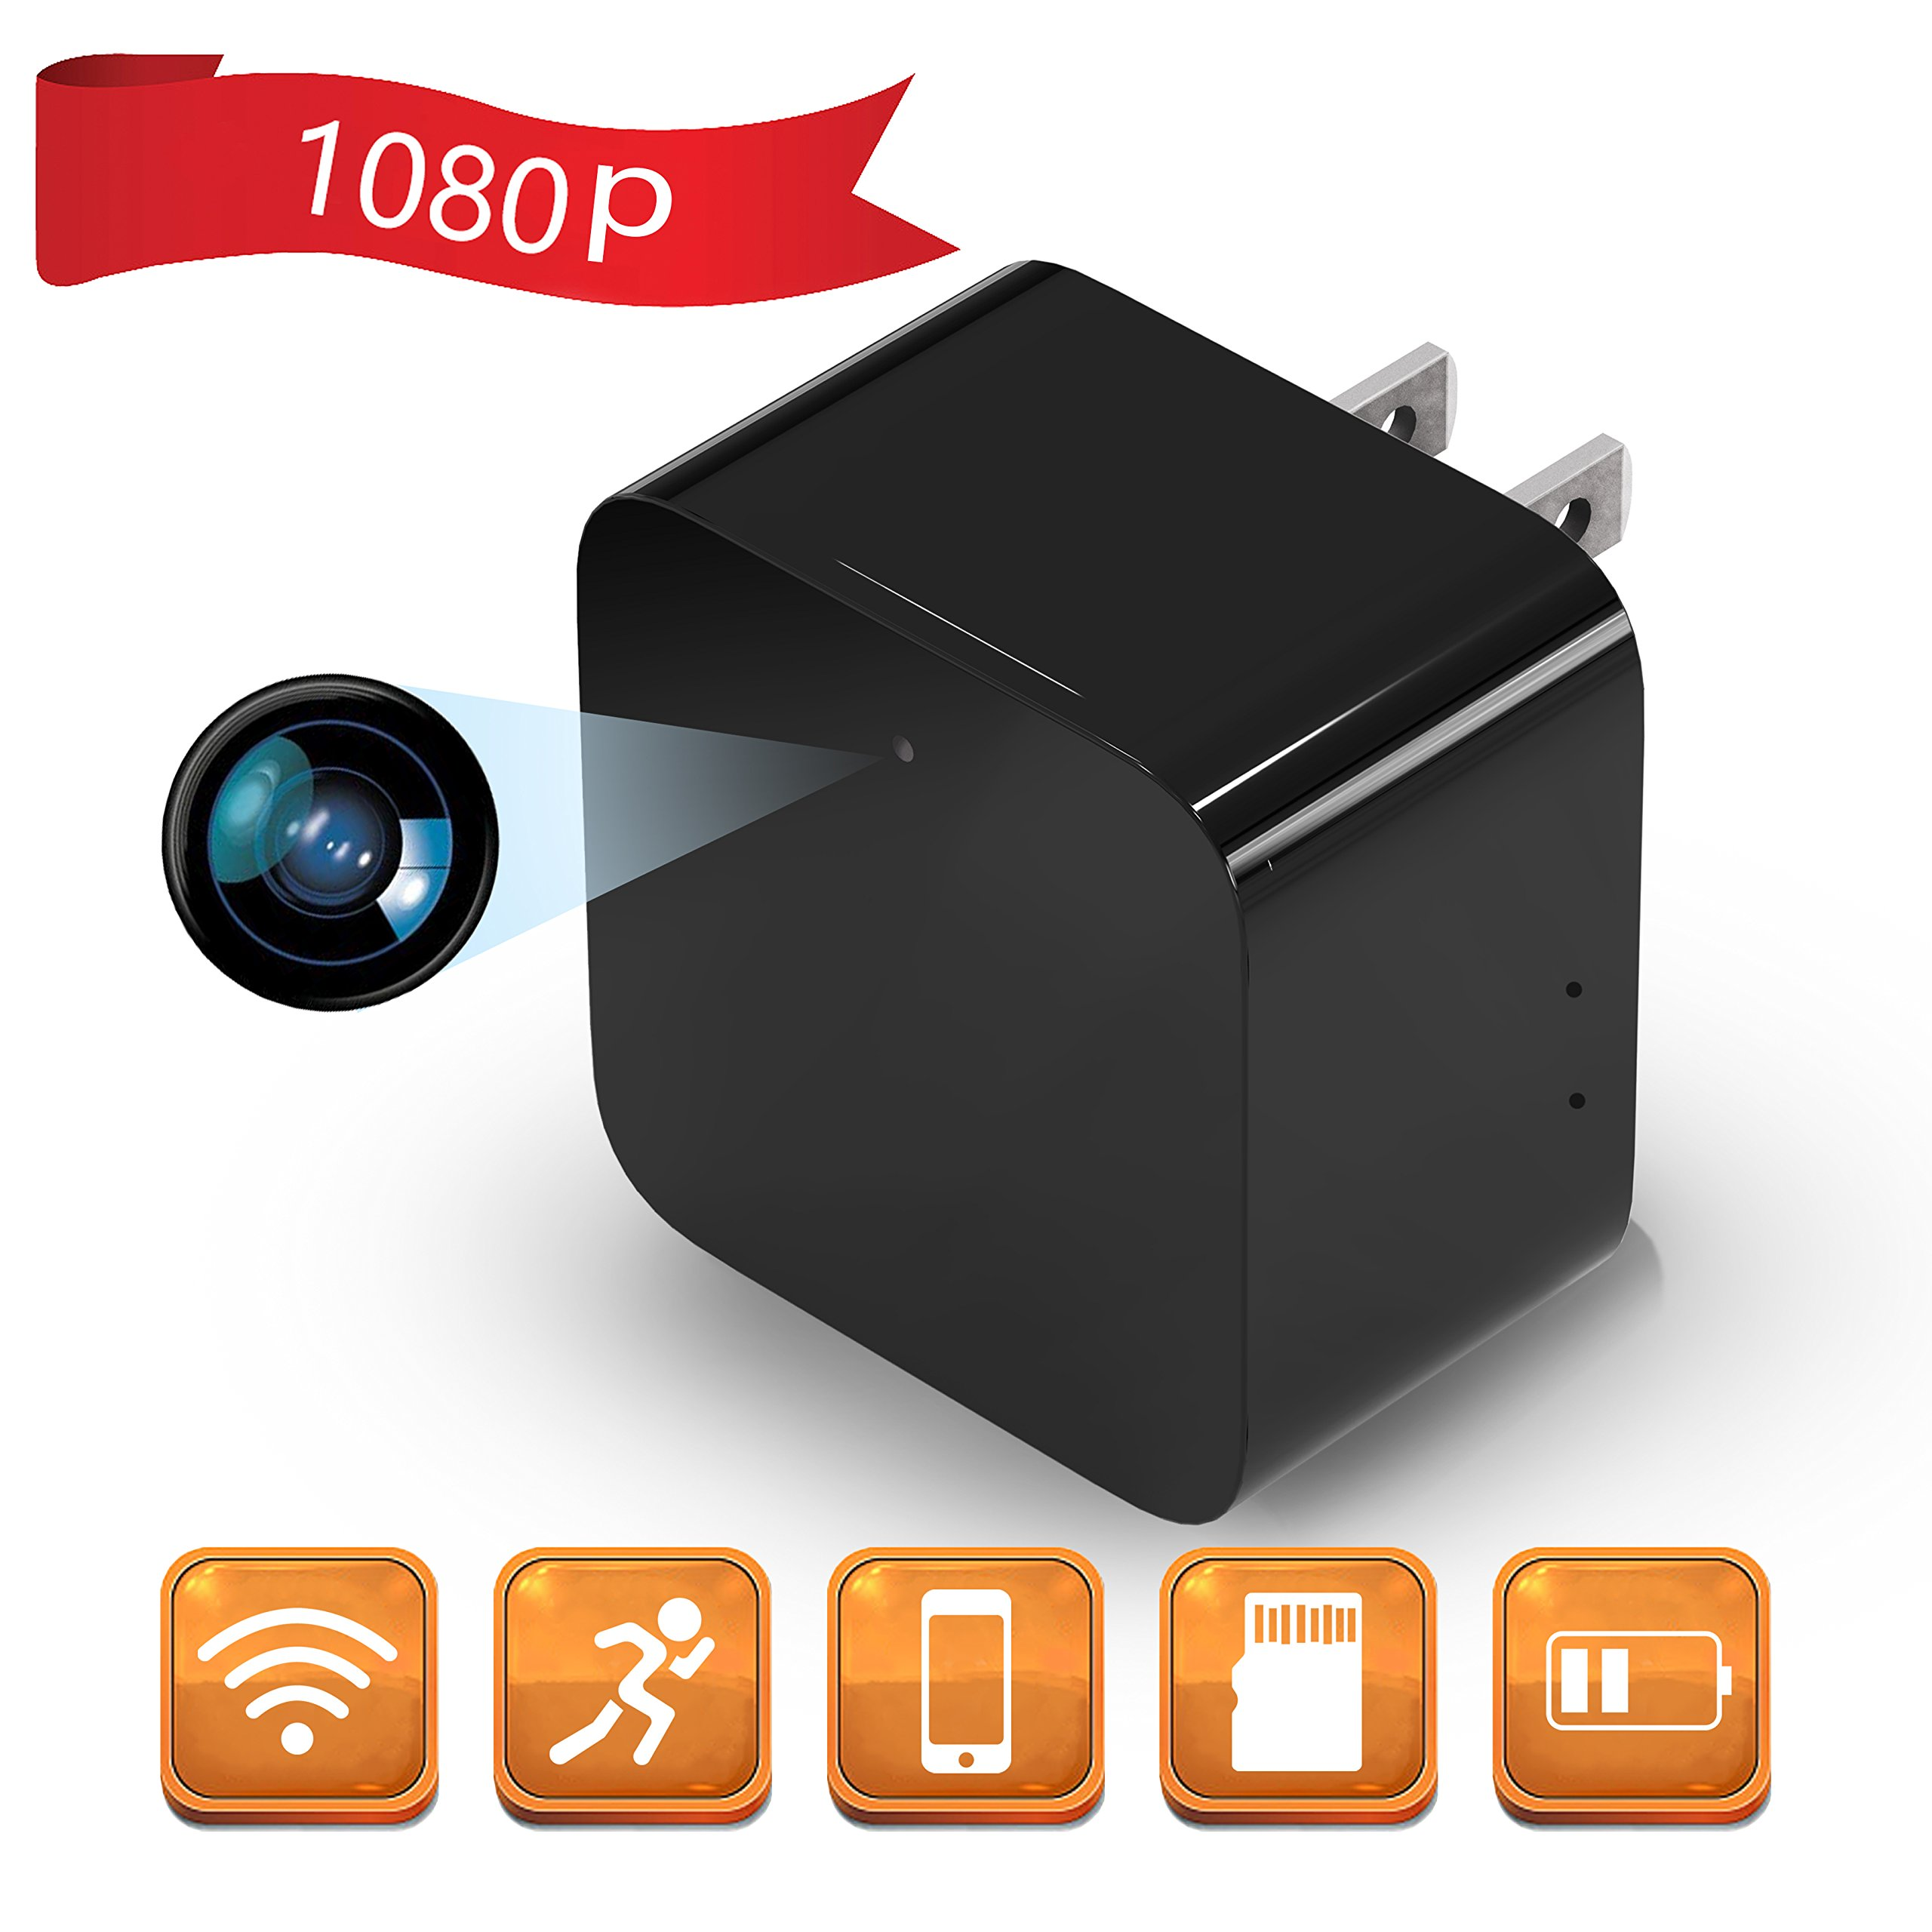 1080P WiFi Spy Camera, Hidden Camera, Mini Camera, Nanny Camera with Motion Detection, Loop Recording for Home and Office Security Surveillance